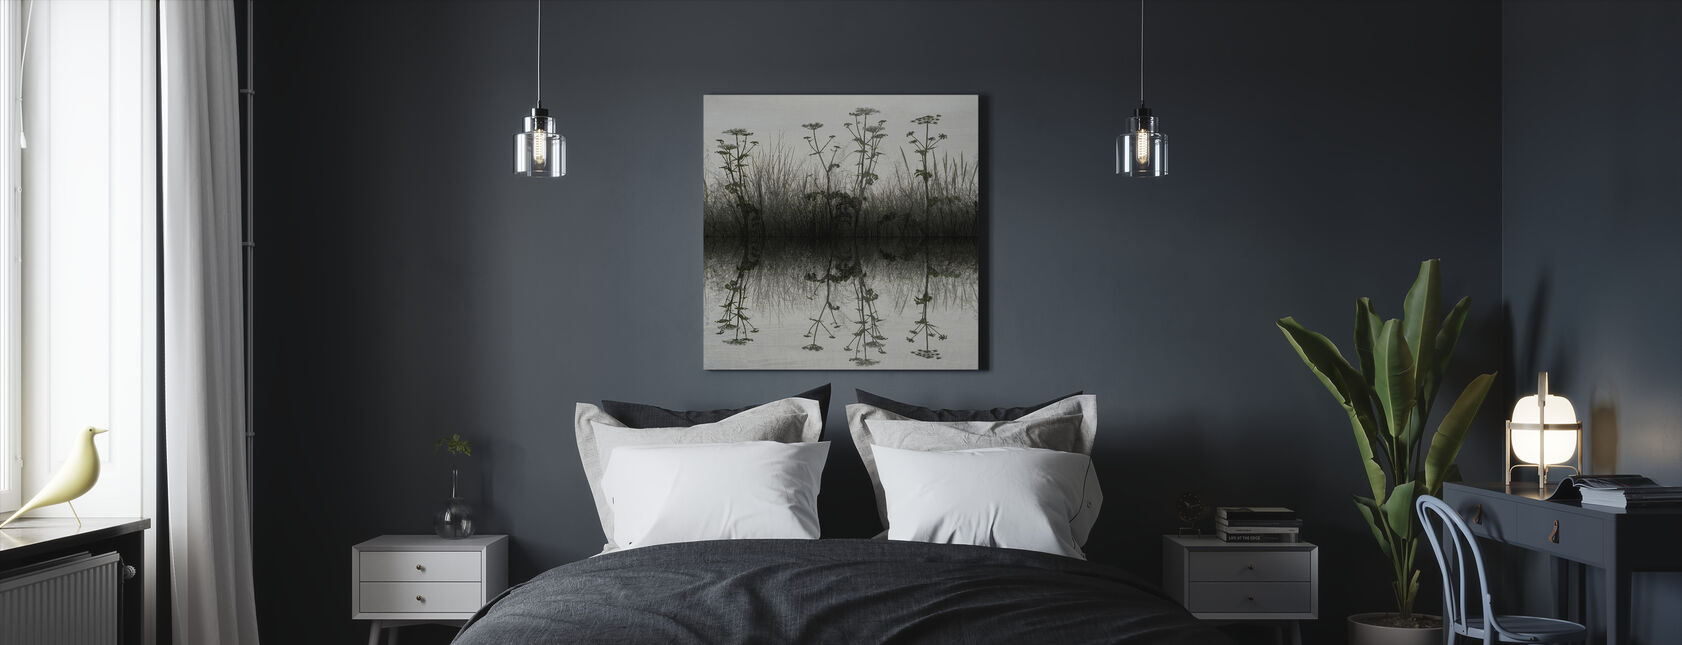 Floral Water Reflection - Canvas print - Bedroom